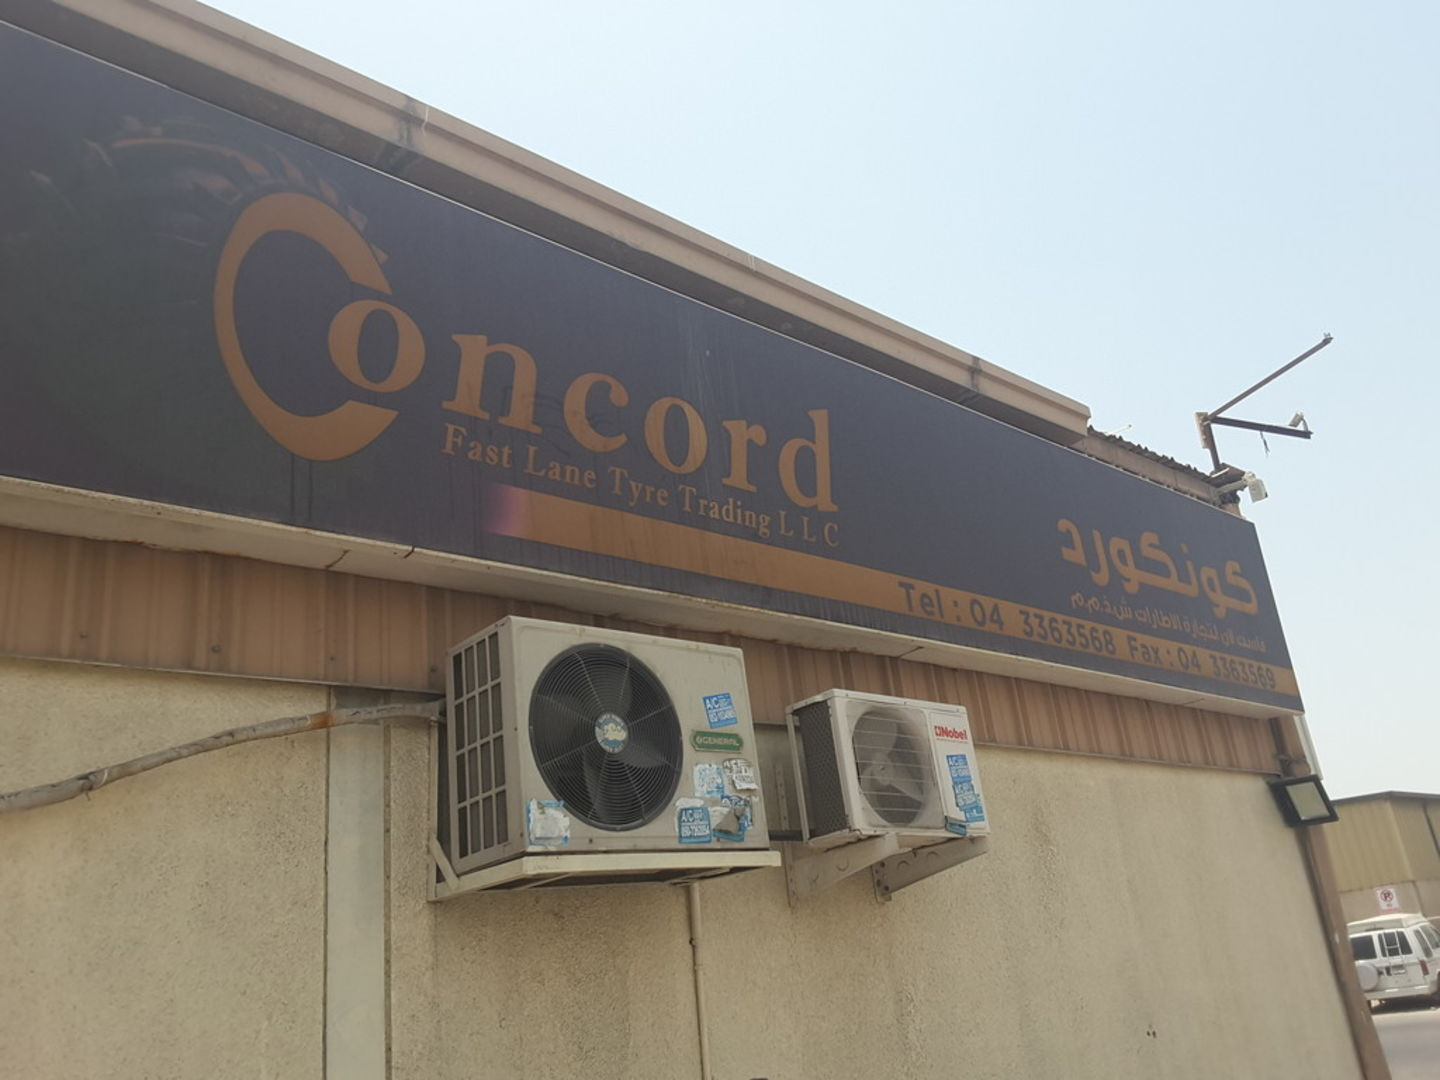 Walif-business-concord-fast-lane-tyre-trading